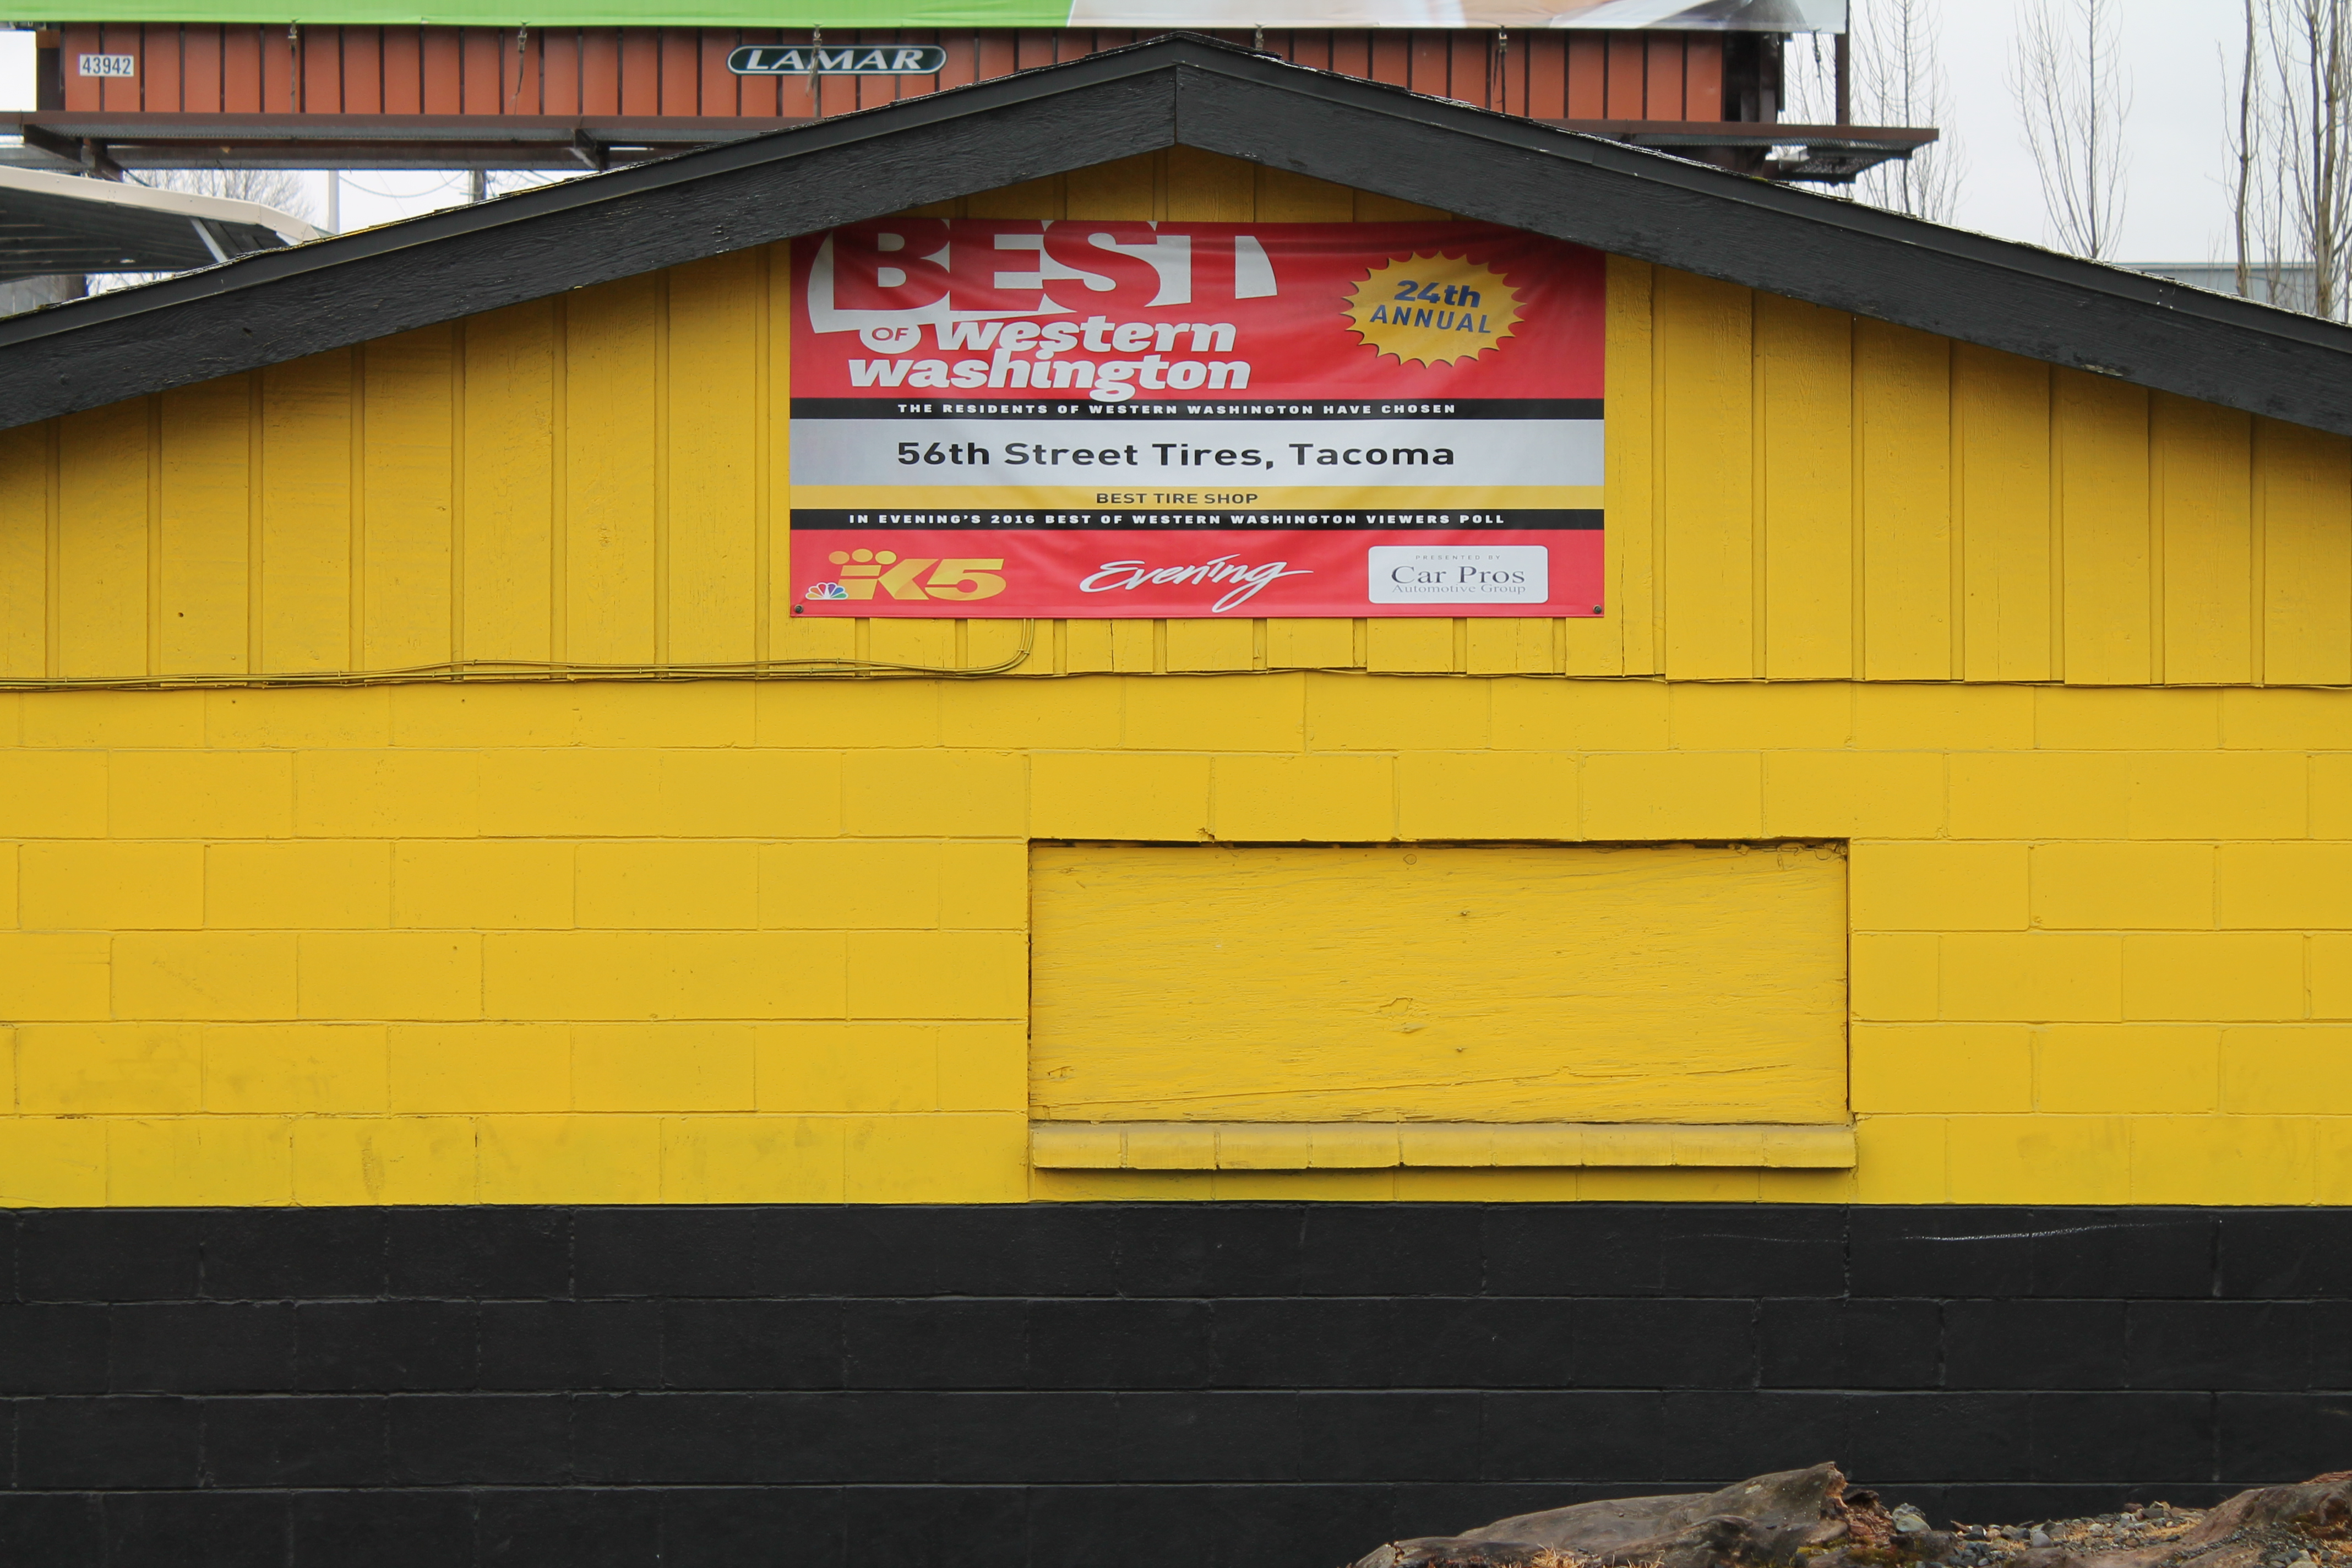 Tire Shop Open Late >> New And Used Tires Shop In Tacoma Wa Home Of The 18 Tire